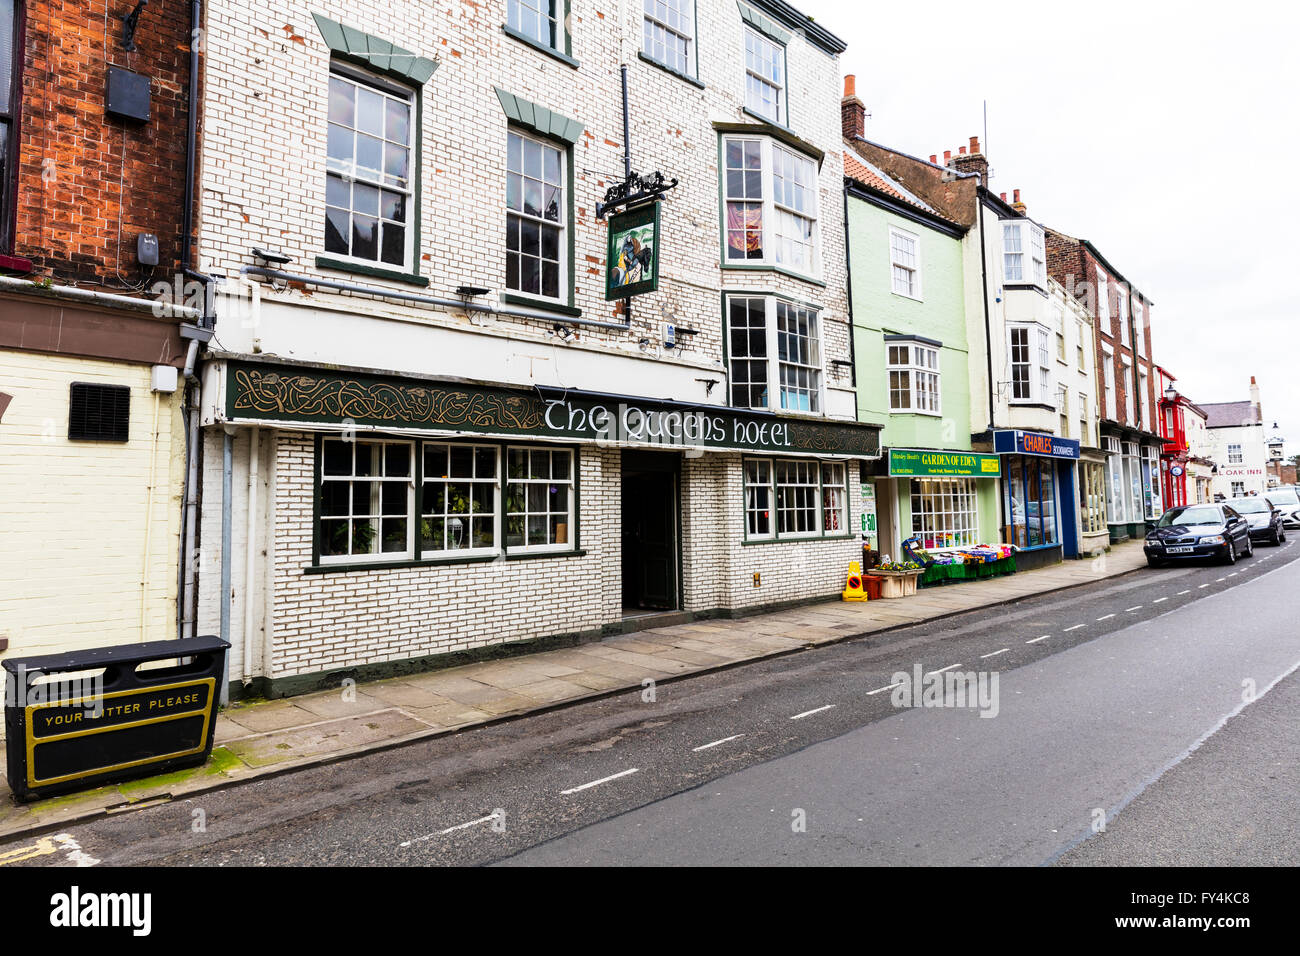 The Queens hotel pub old town Bridlington Yorkshire UK England coastal town towns - Stock Image